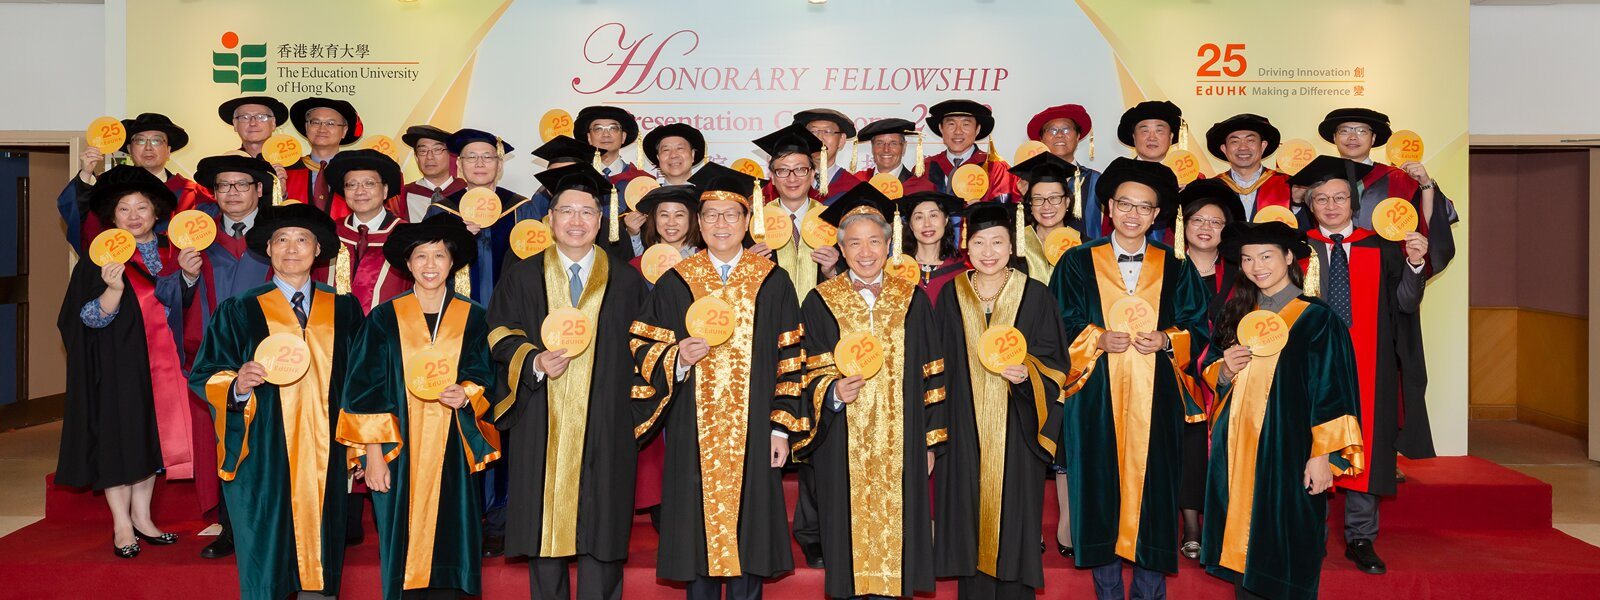 The 11th Honorary Fellowship Presentation Ceremony